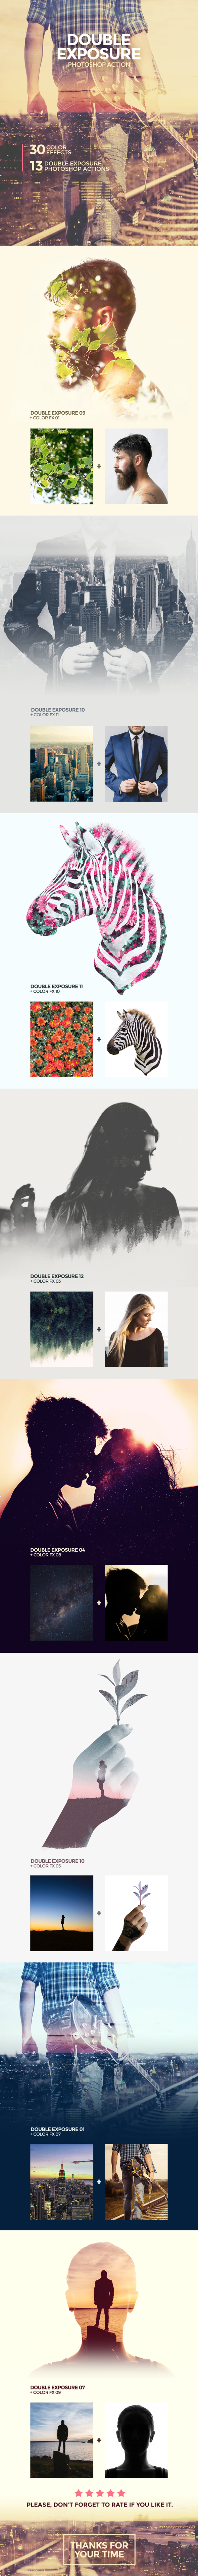 GraphicRiver: Double Exposure